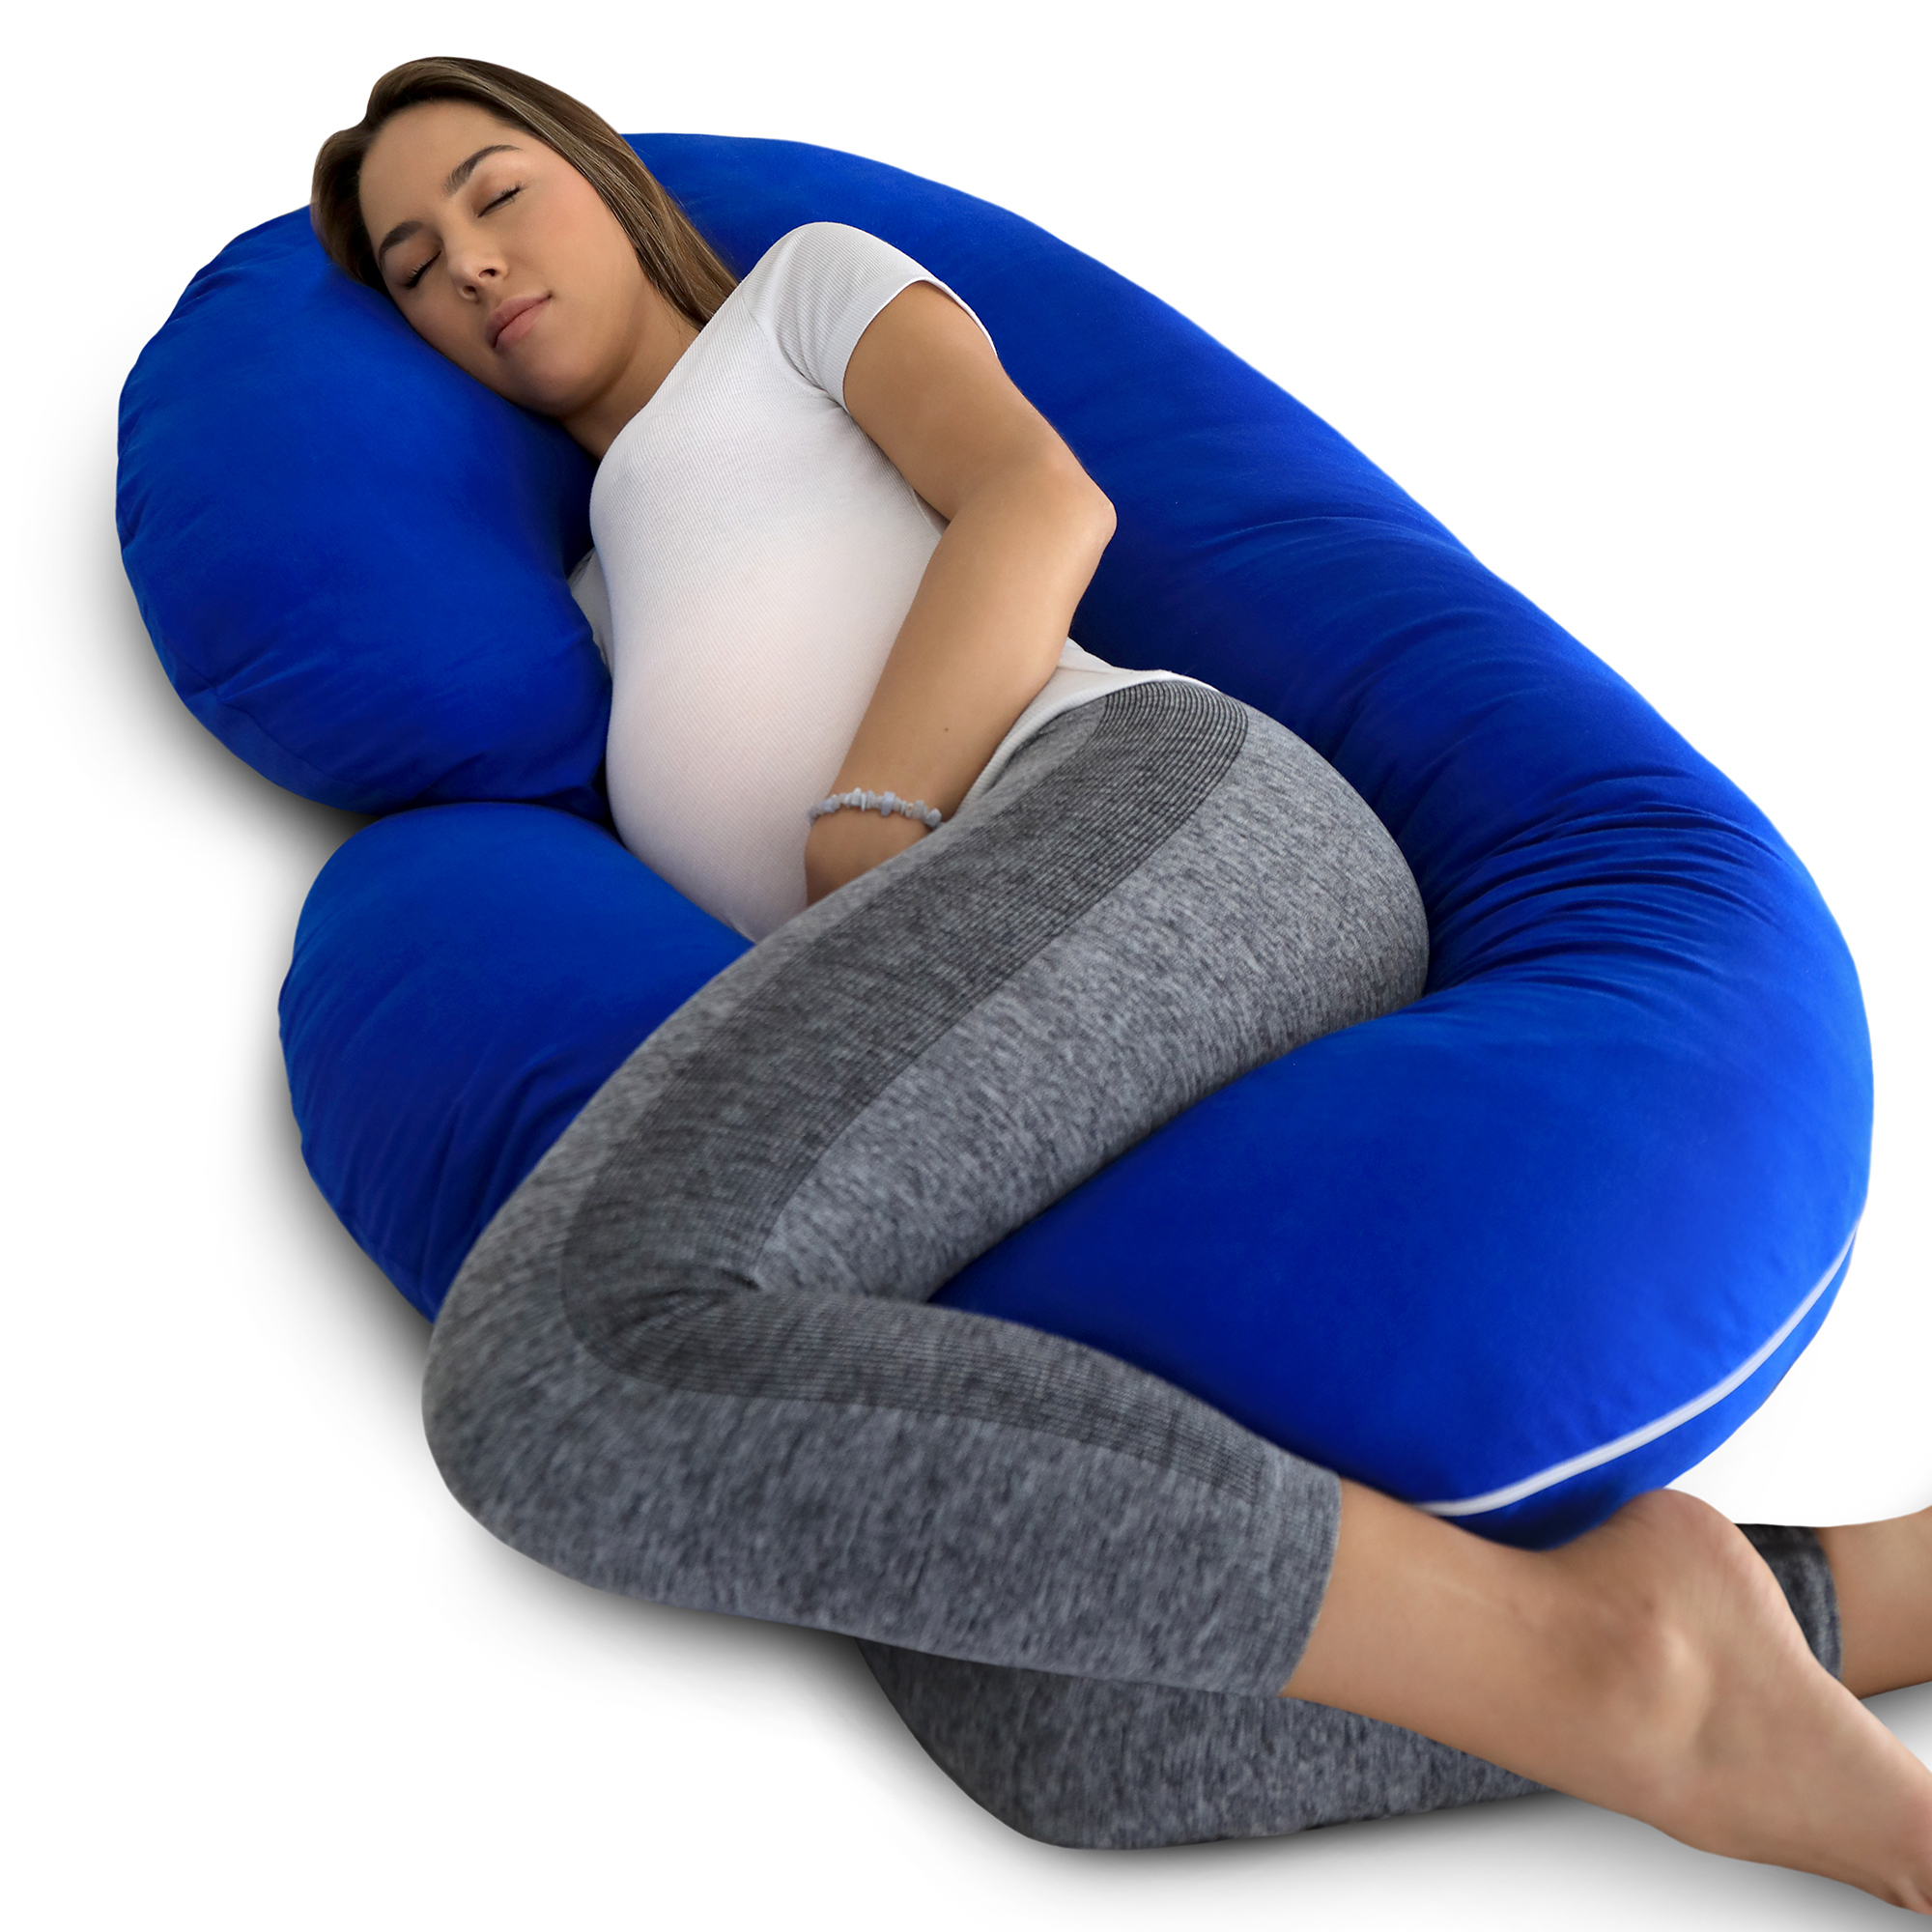 PharMeDoc Pregnancy Pillow with BLUE Jersey Cover - C Shaped Body Pillow for Pregnant Women